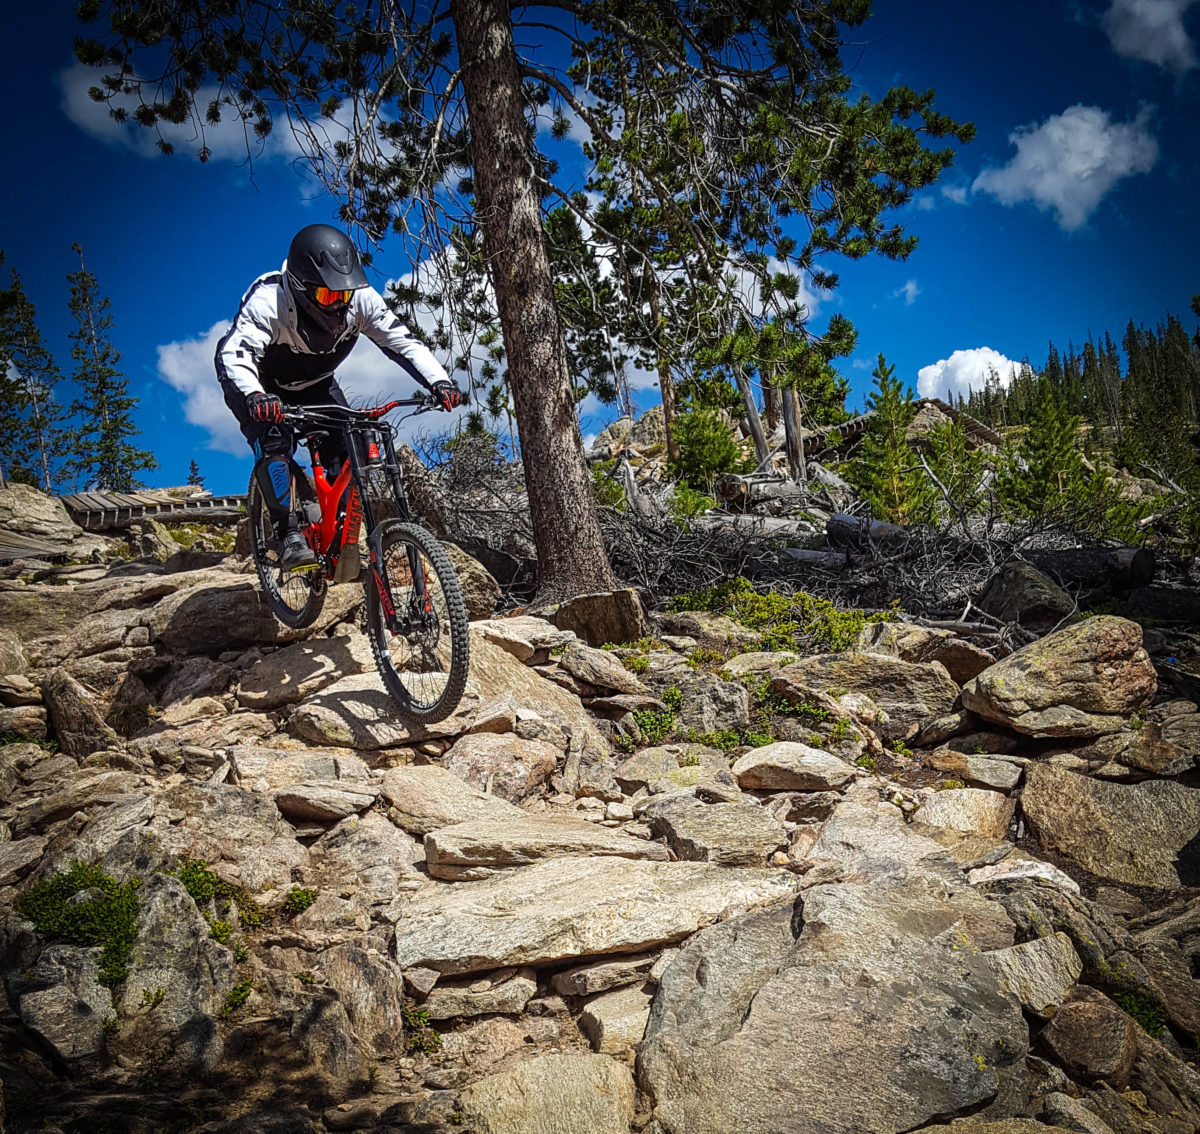 Rocks, rocks, and more rocks. They keep getting easier the more you ride them